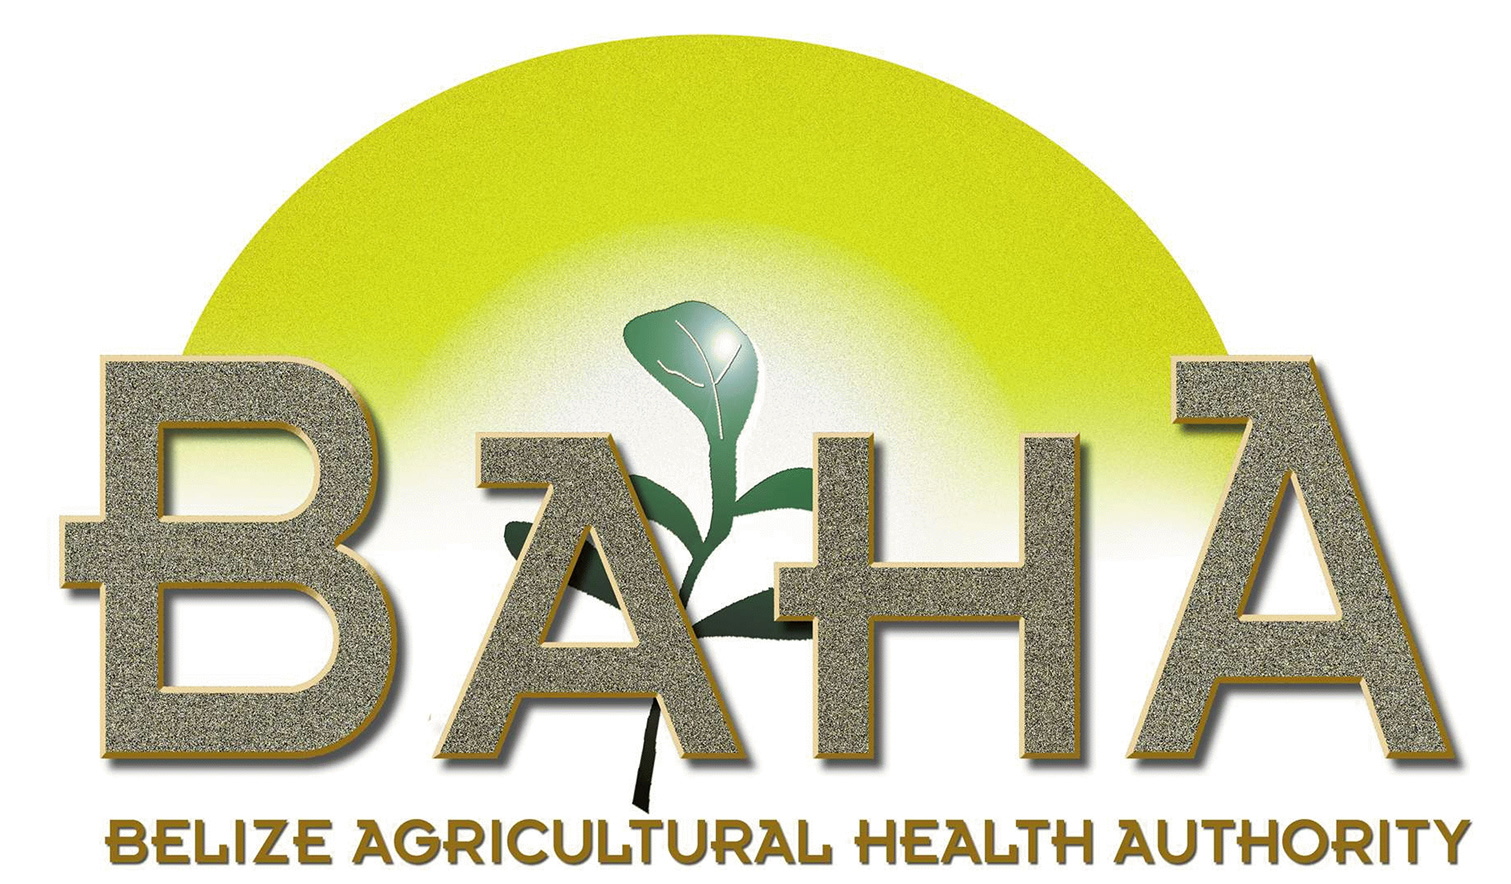 Belize Agricultural Health Authority